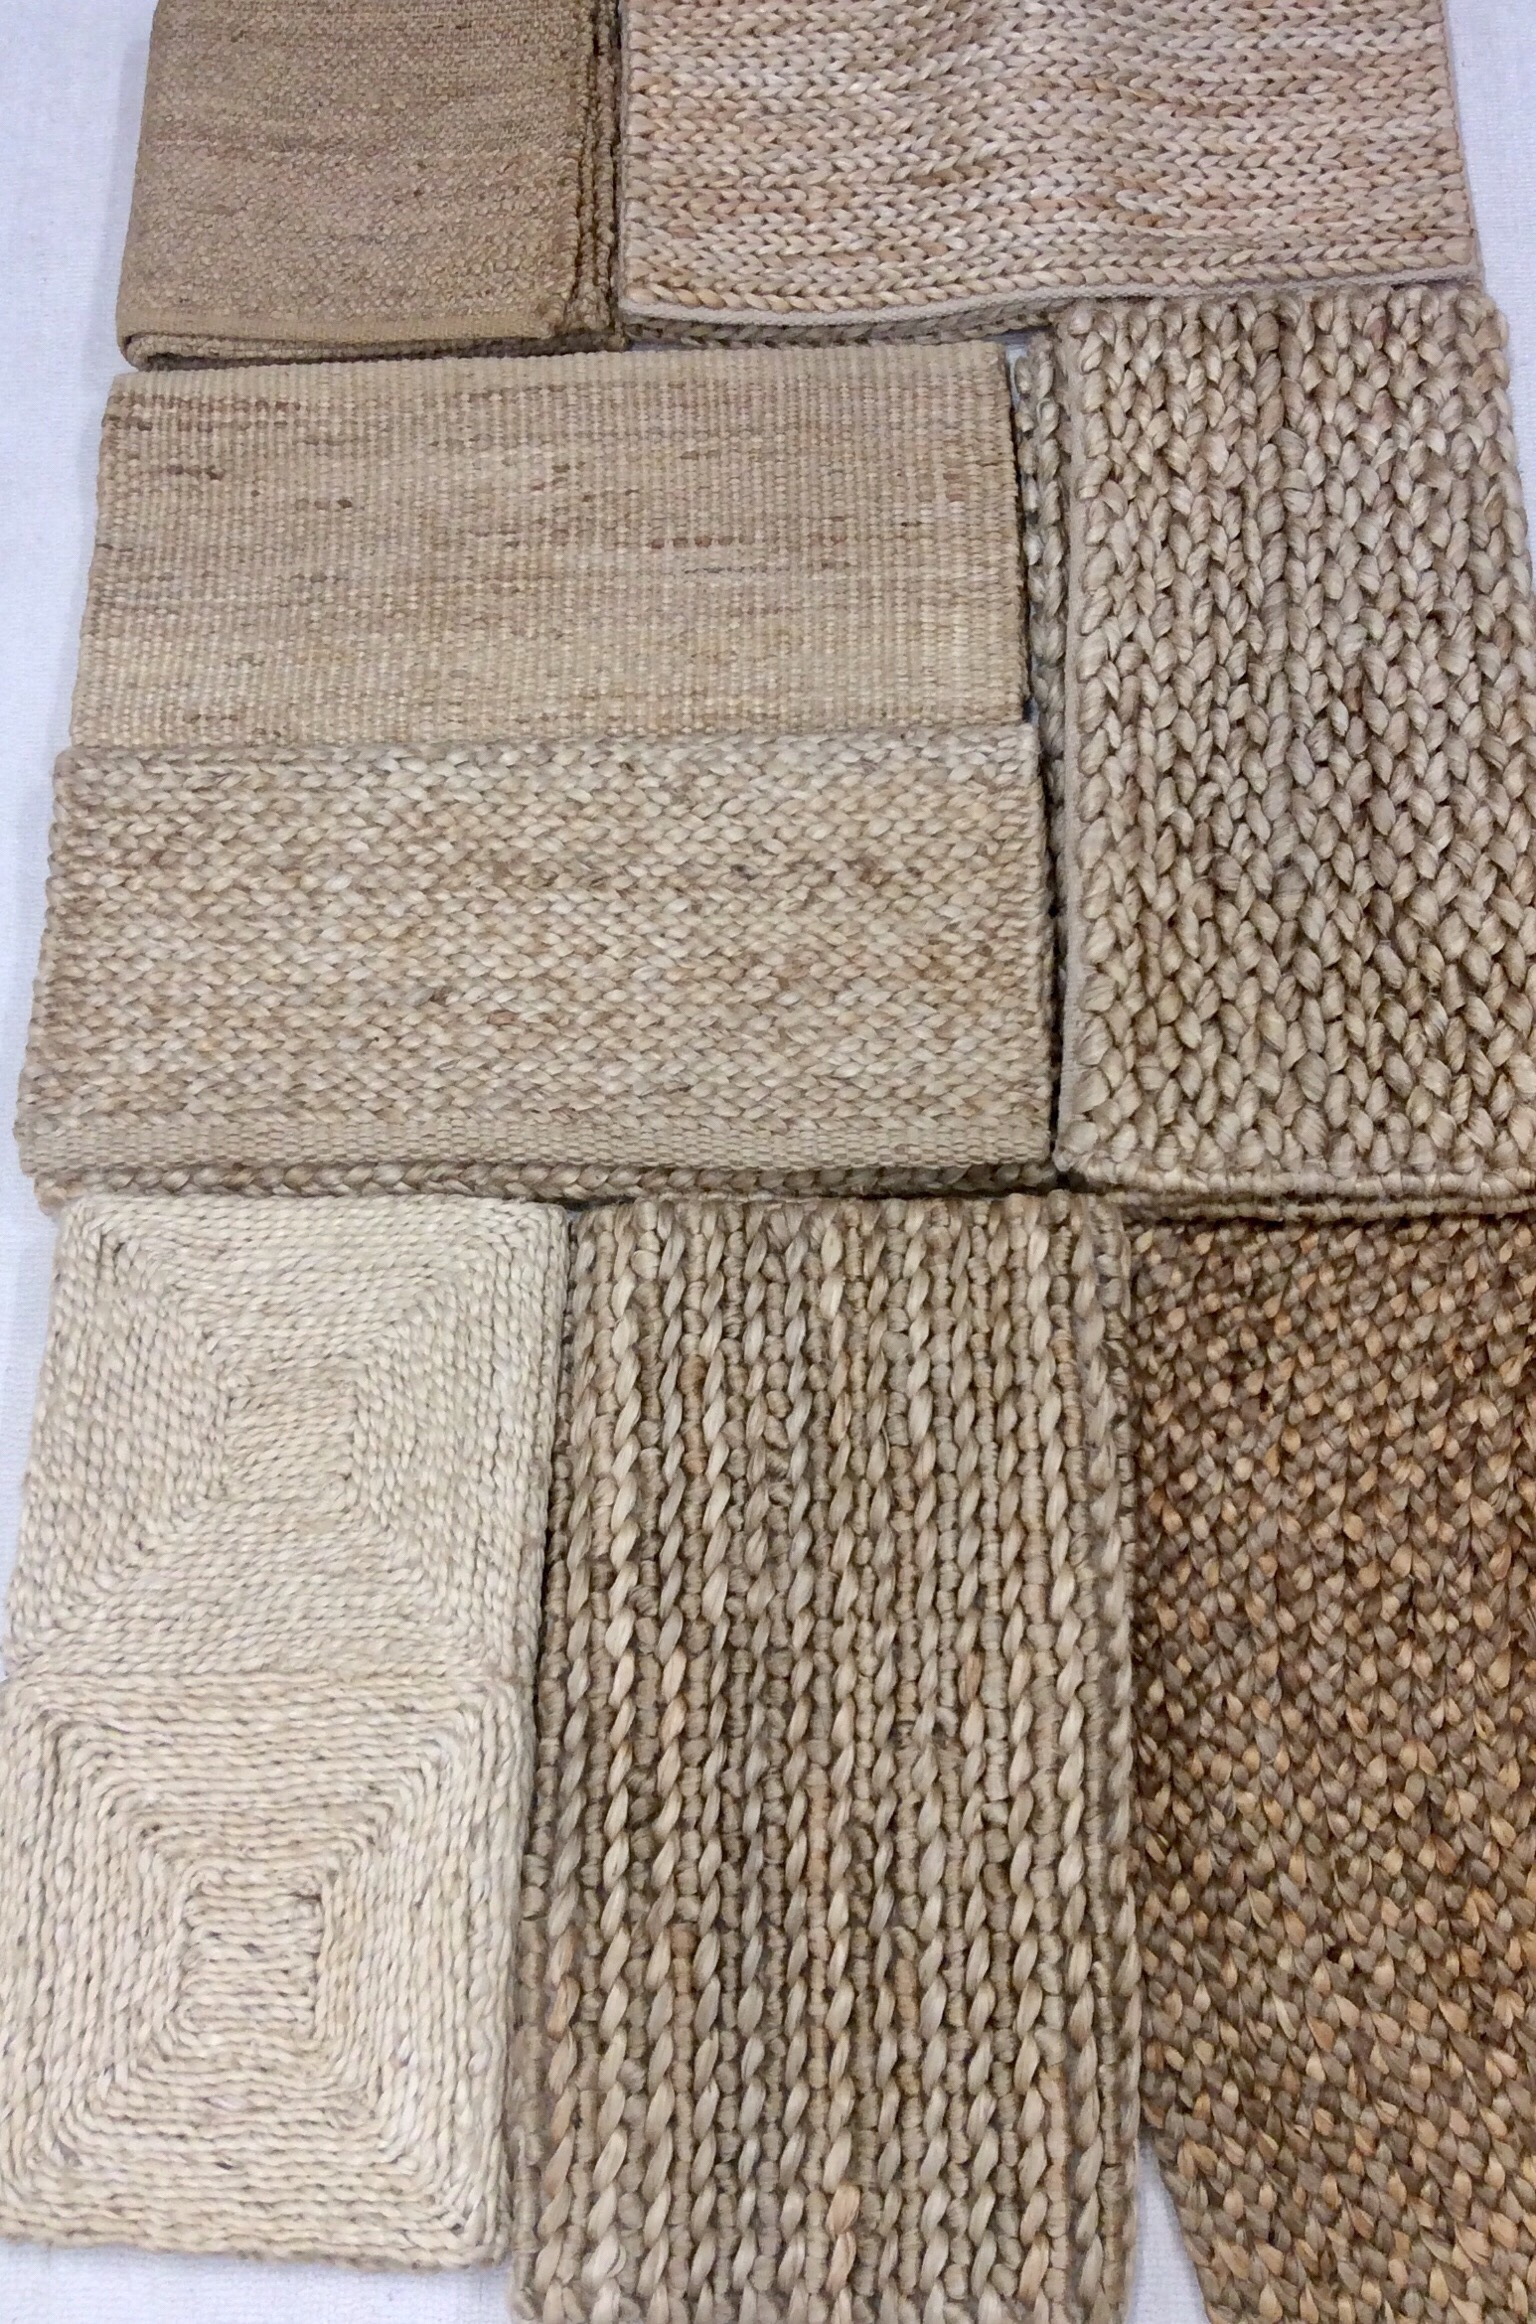 NEW From Akara Rugs The Jute Collection at Las Vegas Market